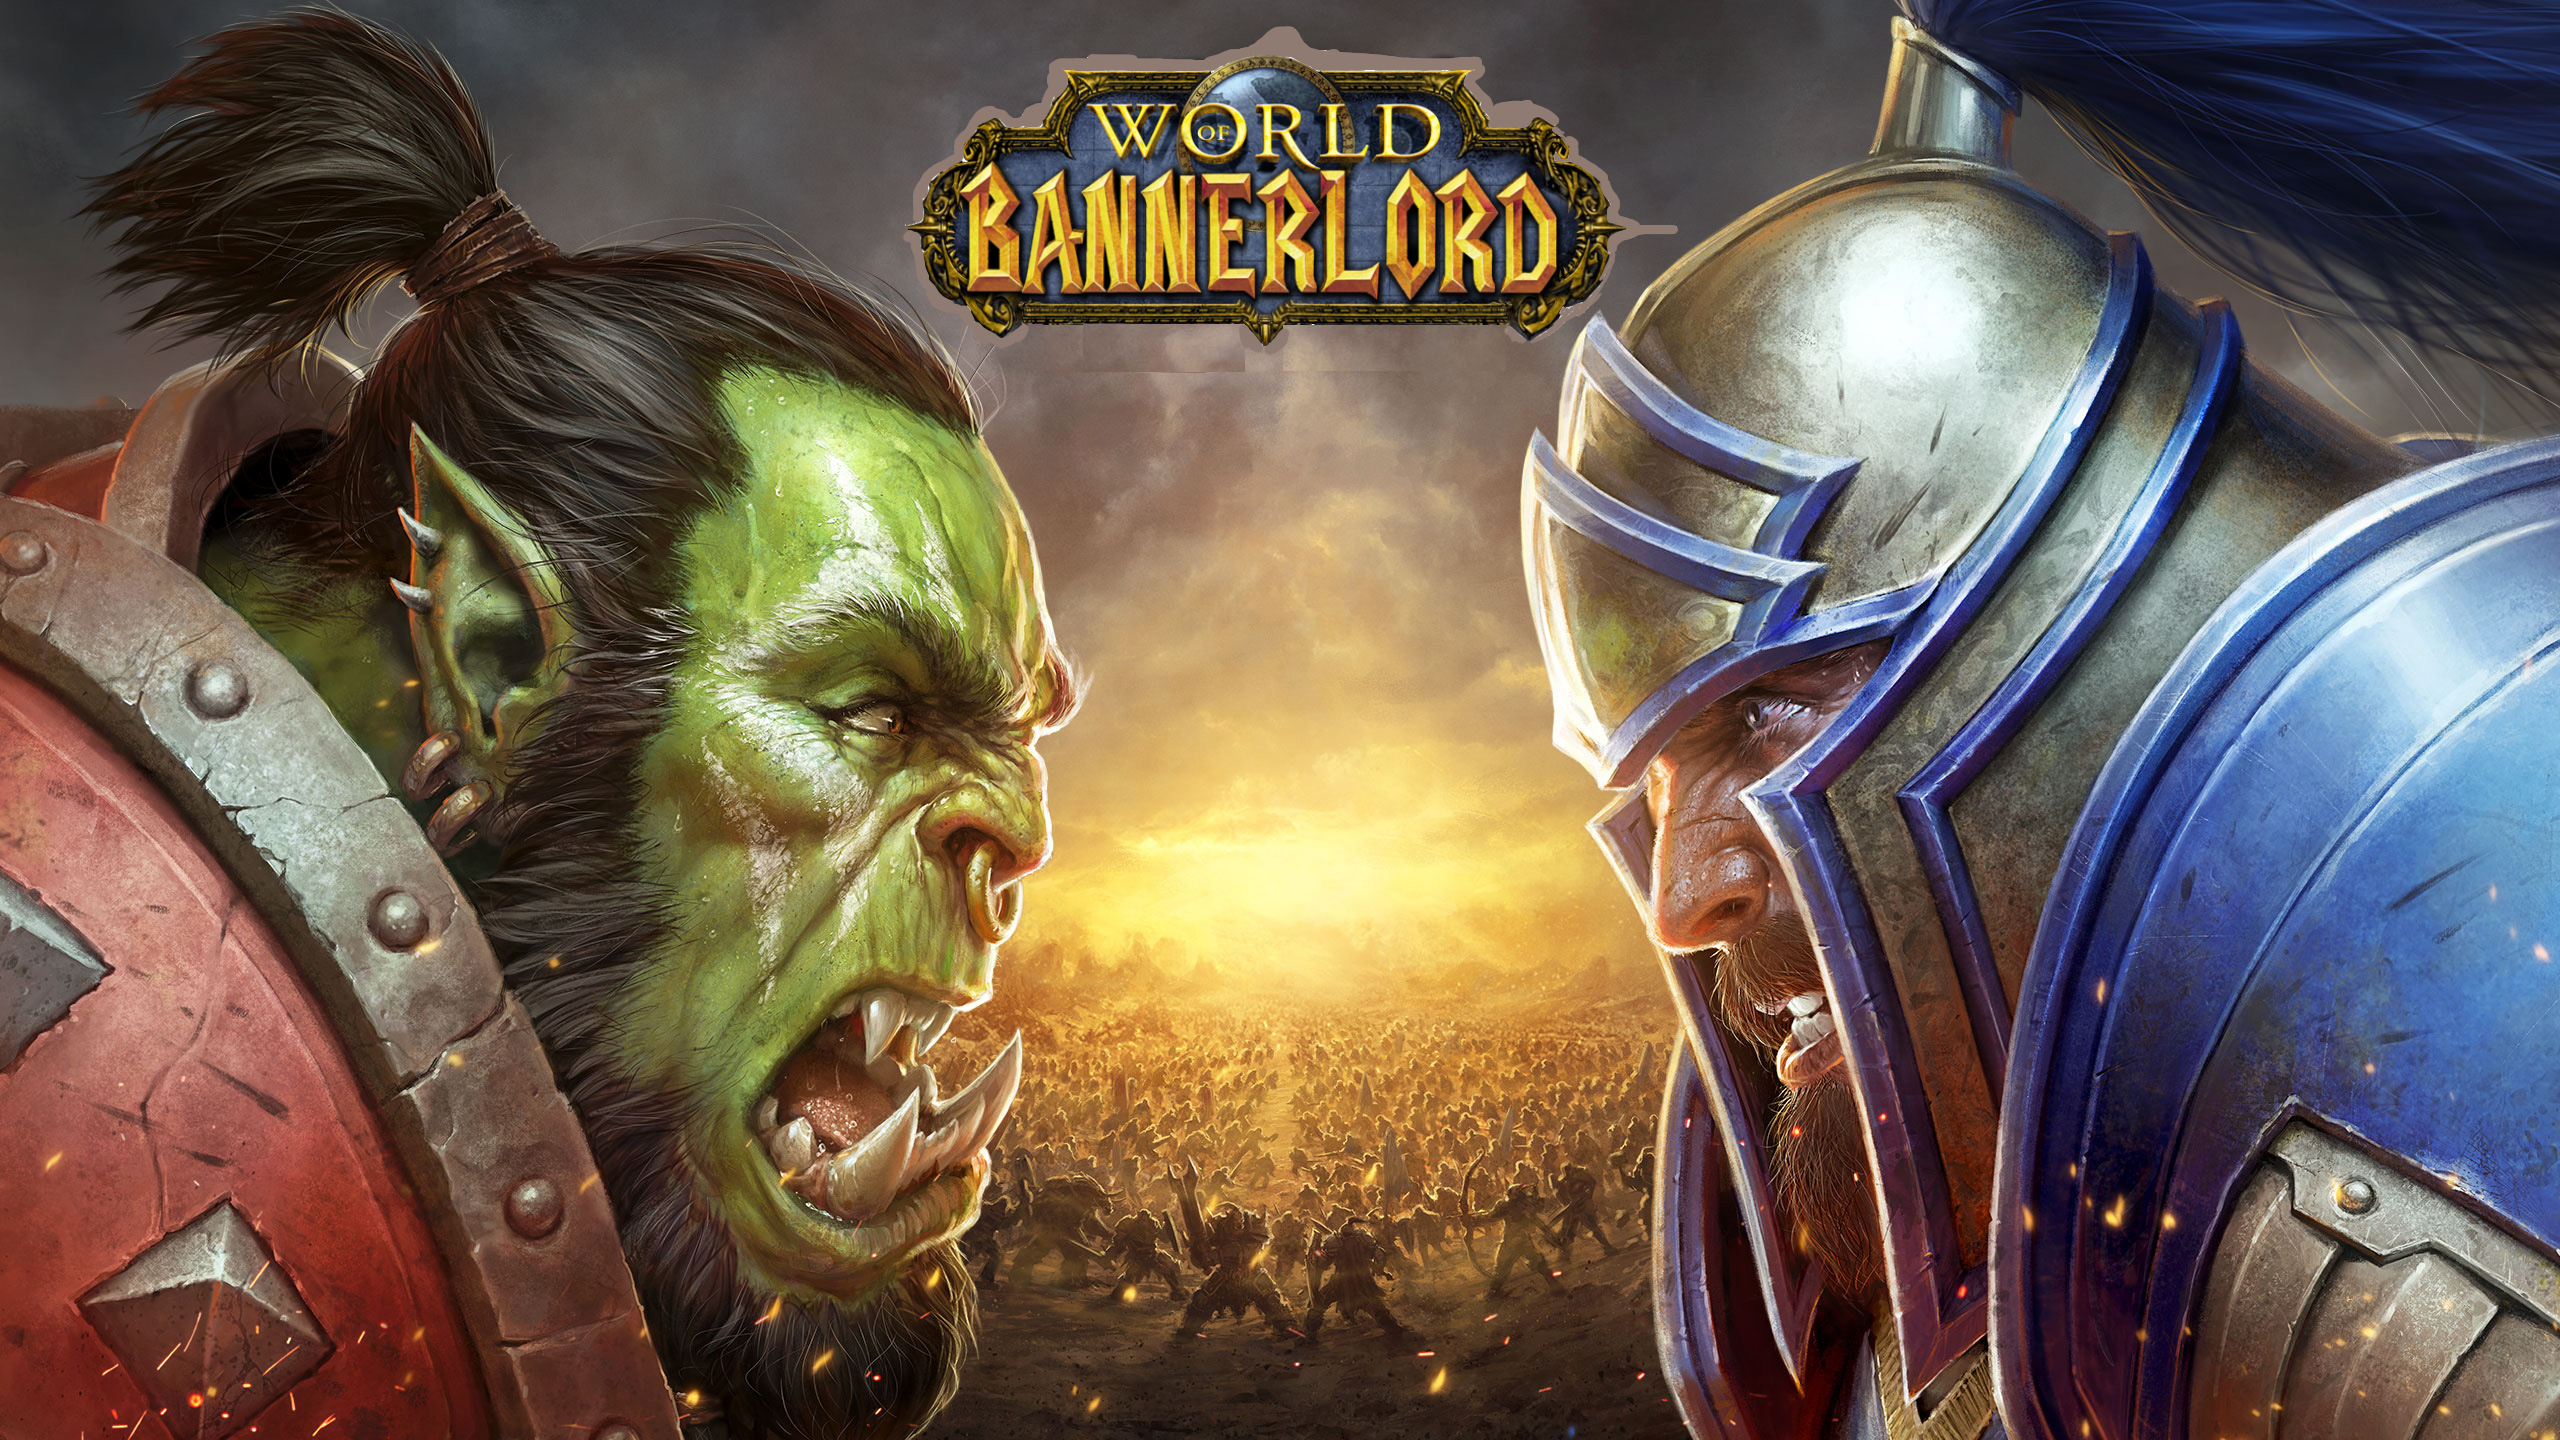 Orcs Vs Humans Image Mount Warcraft Mod For Mount Blade Ii Bannerlord Mod Db